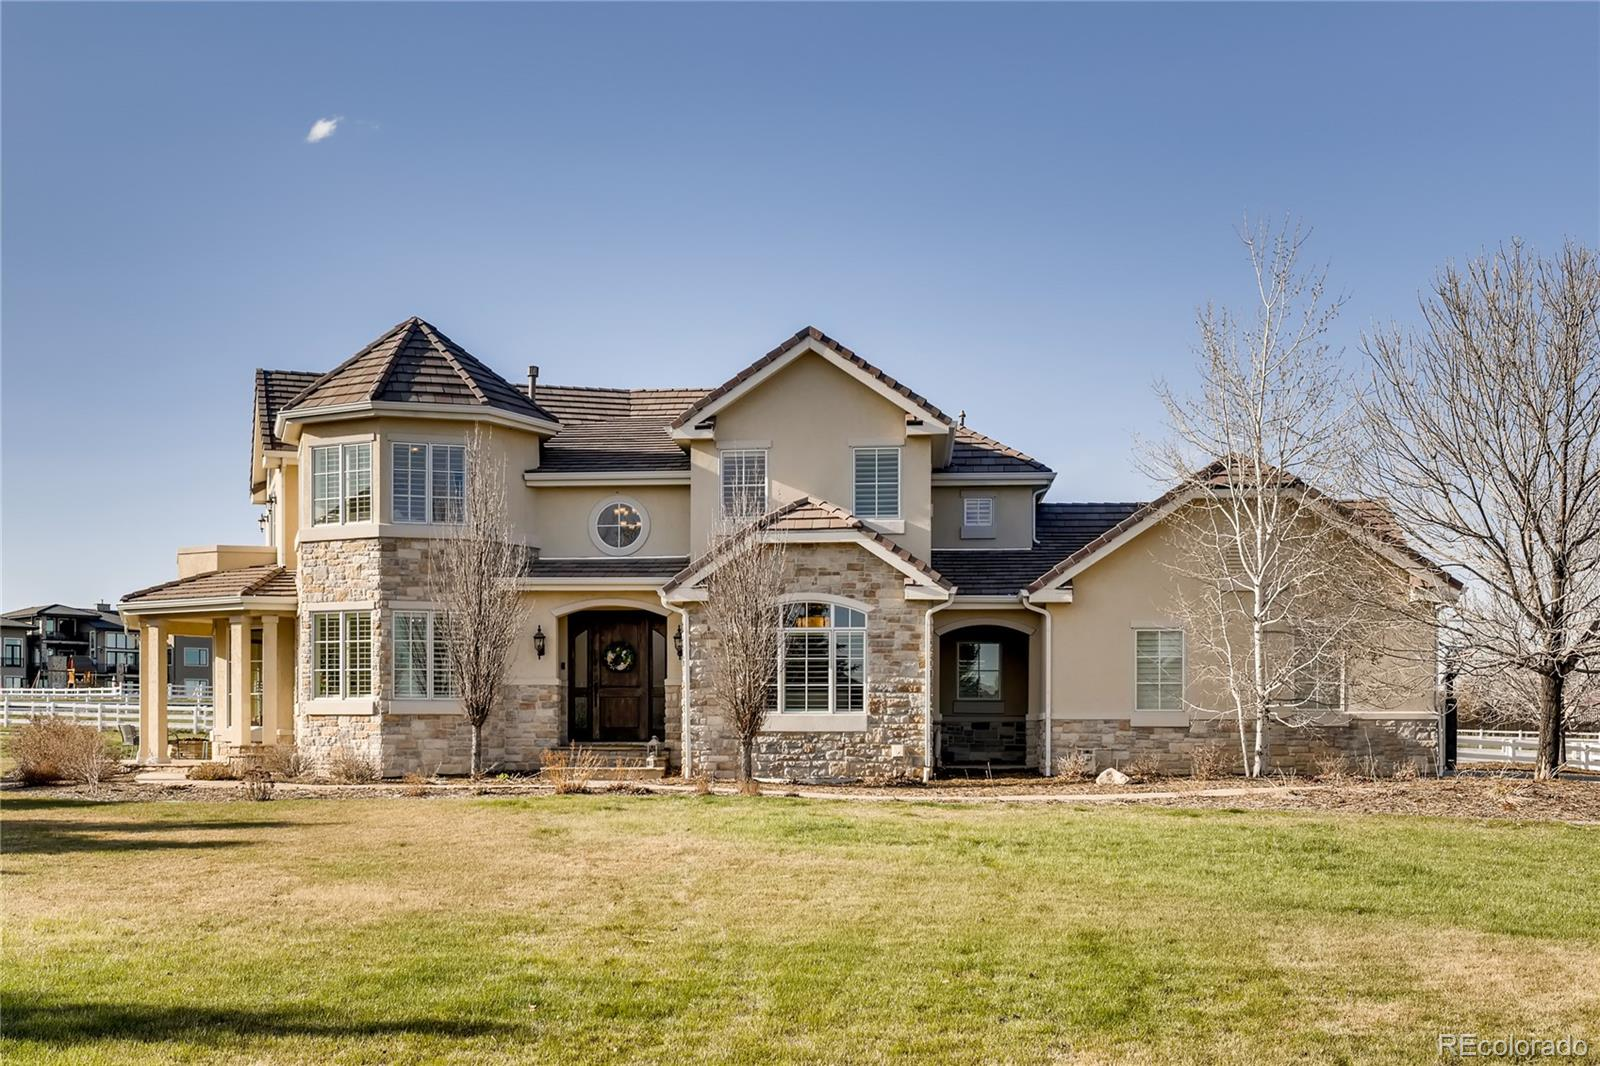 2675 Spruce Meadows Drive, Broomfield, CO 80023 - Broomfield, CO real estate listing